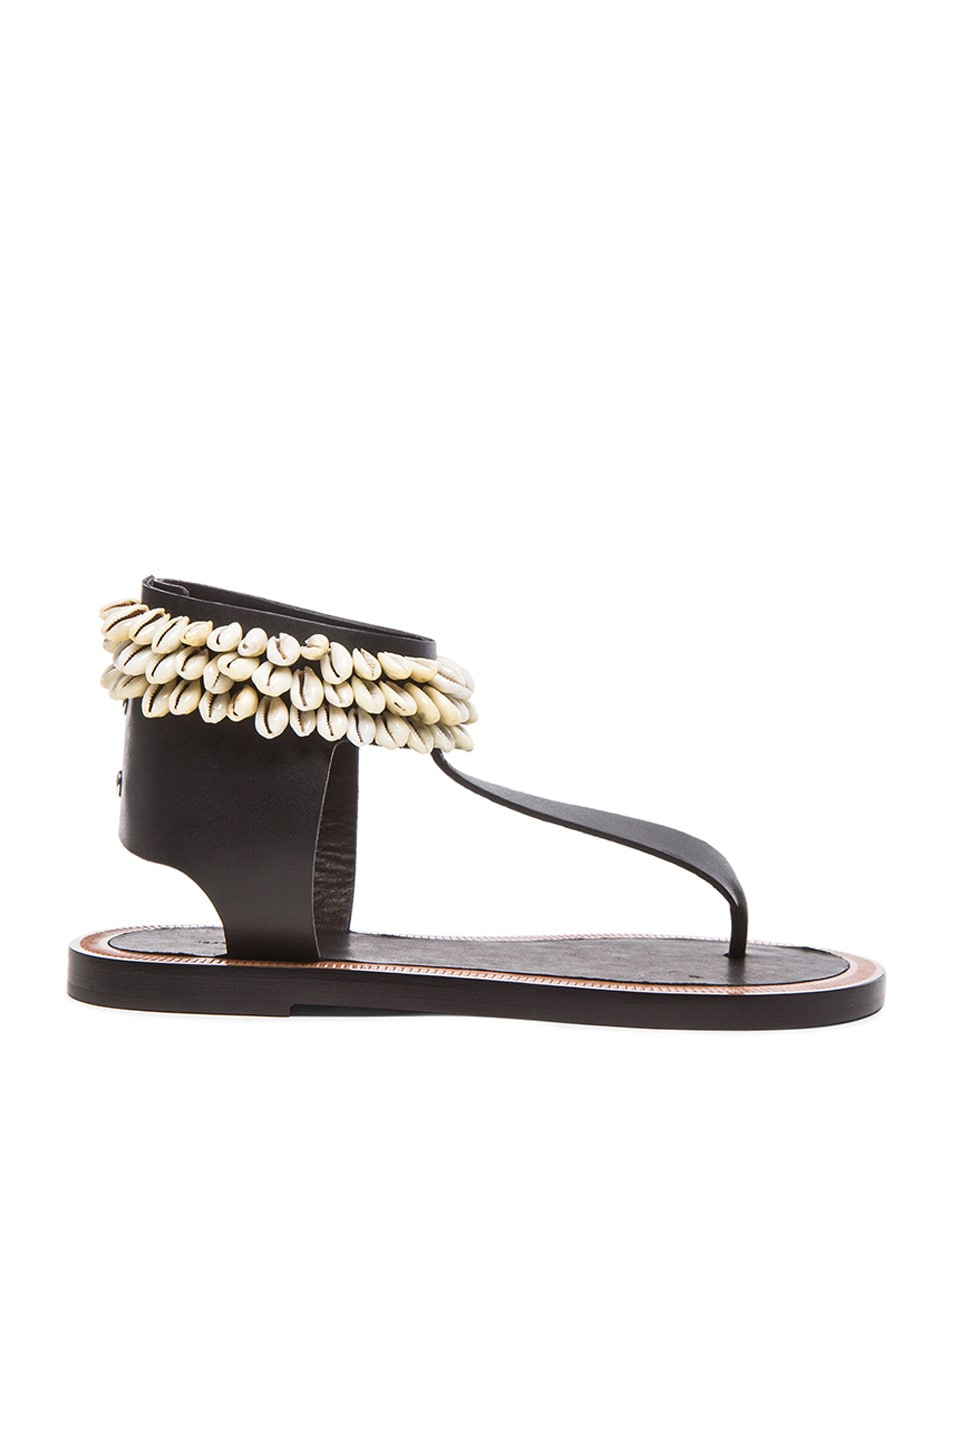 Image 1 of Isabel Marant Jean Cauri Leather Sandals in Black